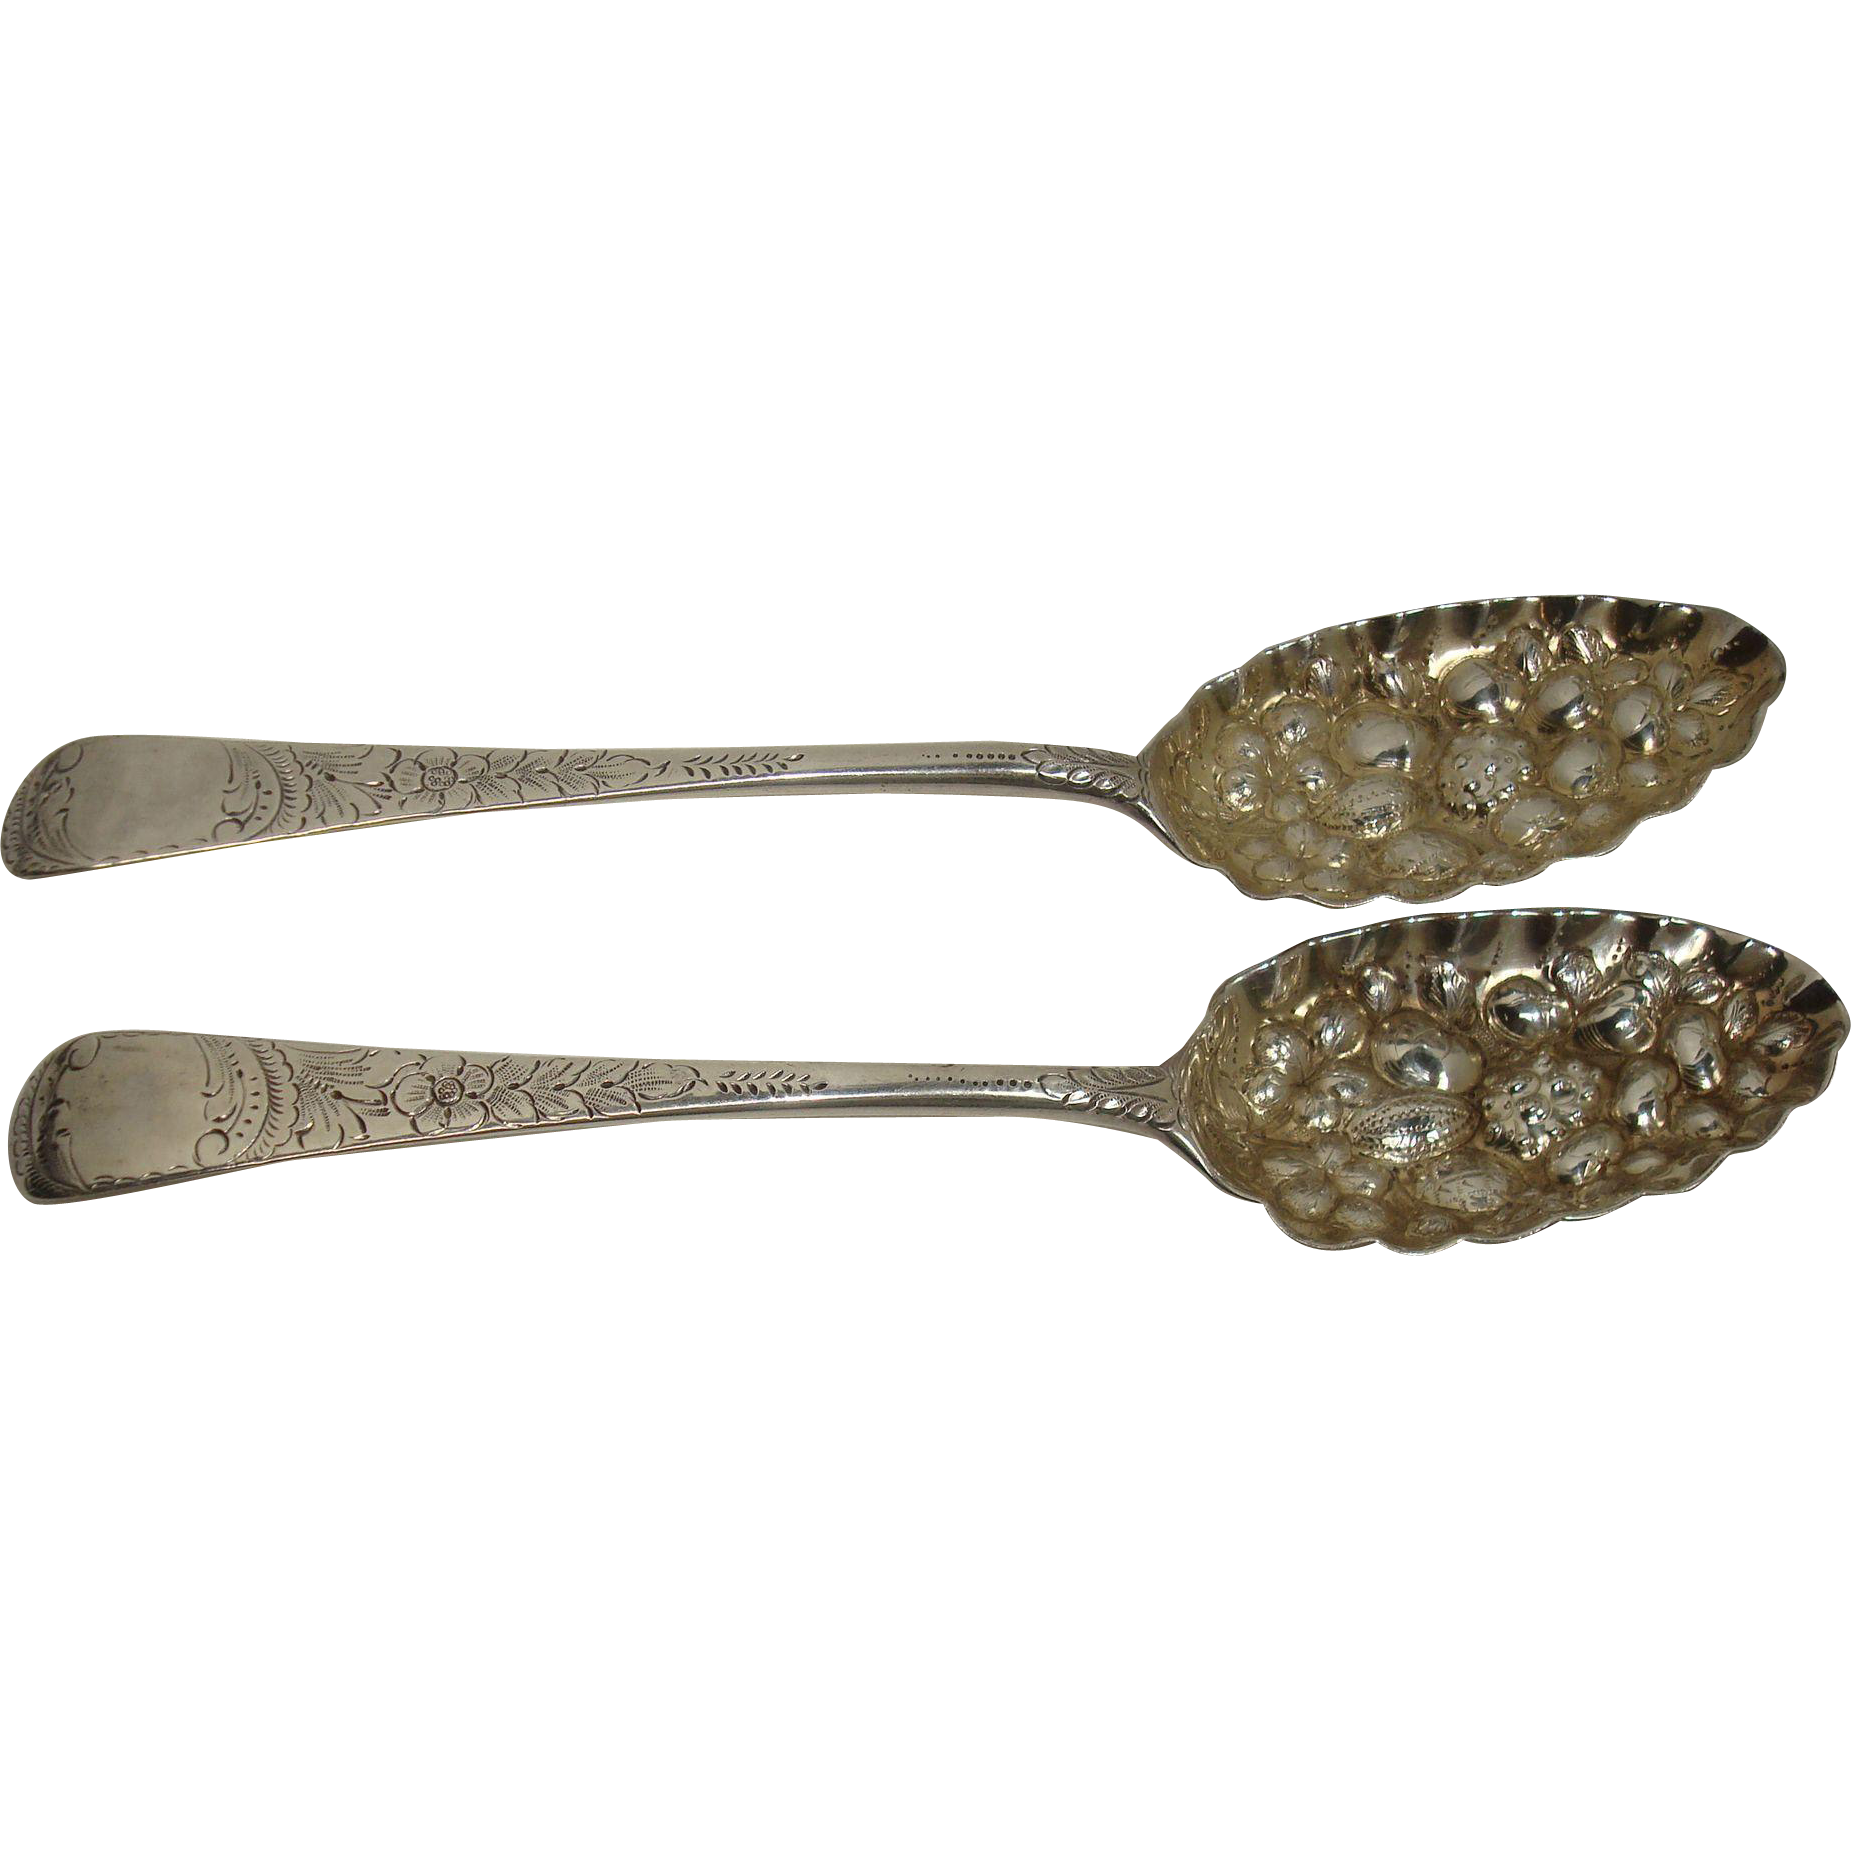 1790 George Smith  William Fearn Berry Spoons